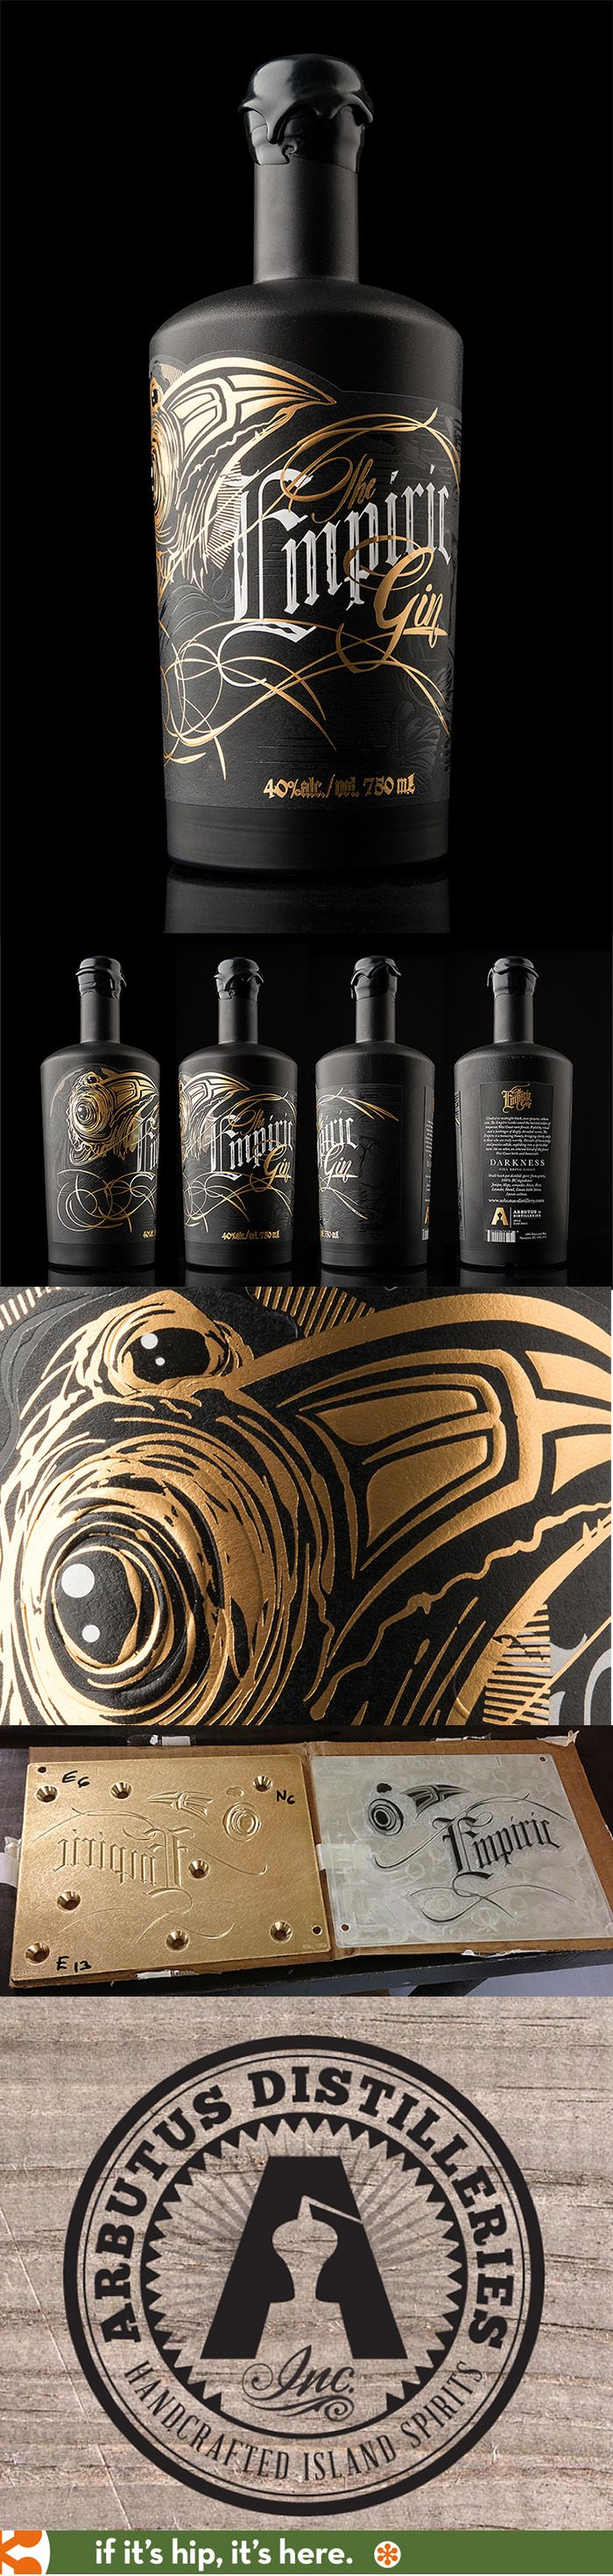 Empiric Gin's foil-stamped embossed wrapped bottle by Hired Guns Creative for Arbutus Distillery.